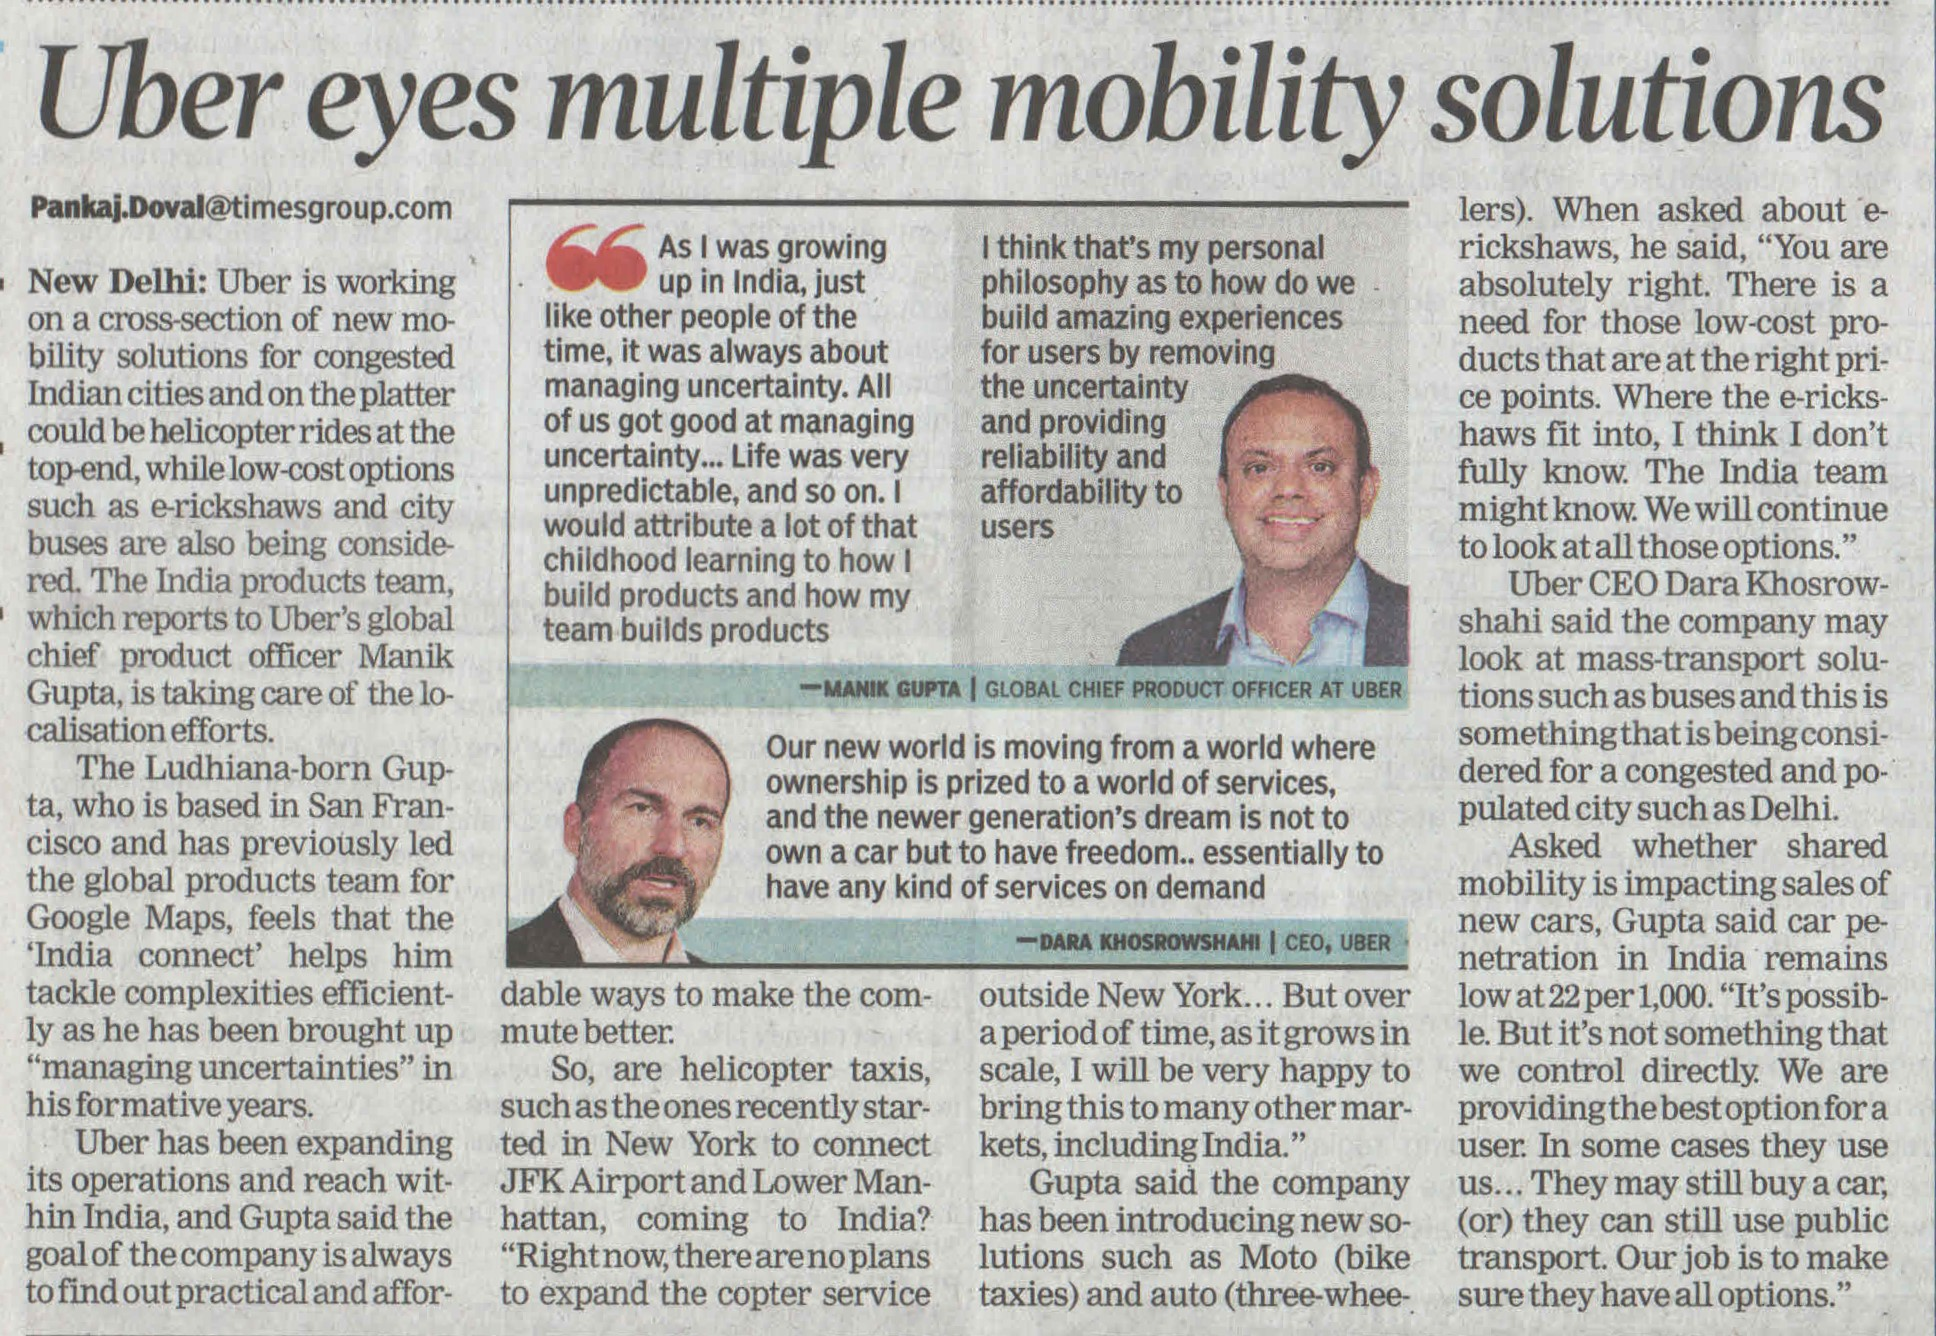 Uber eyes multiple mobility solutions